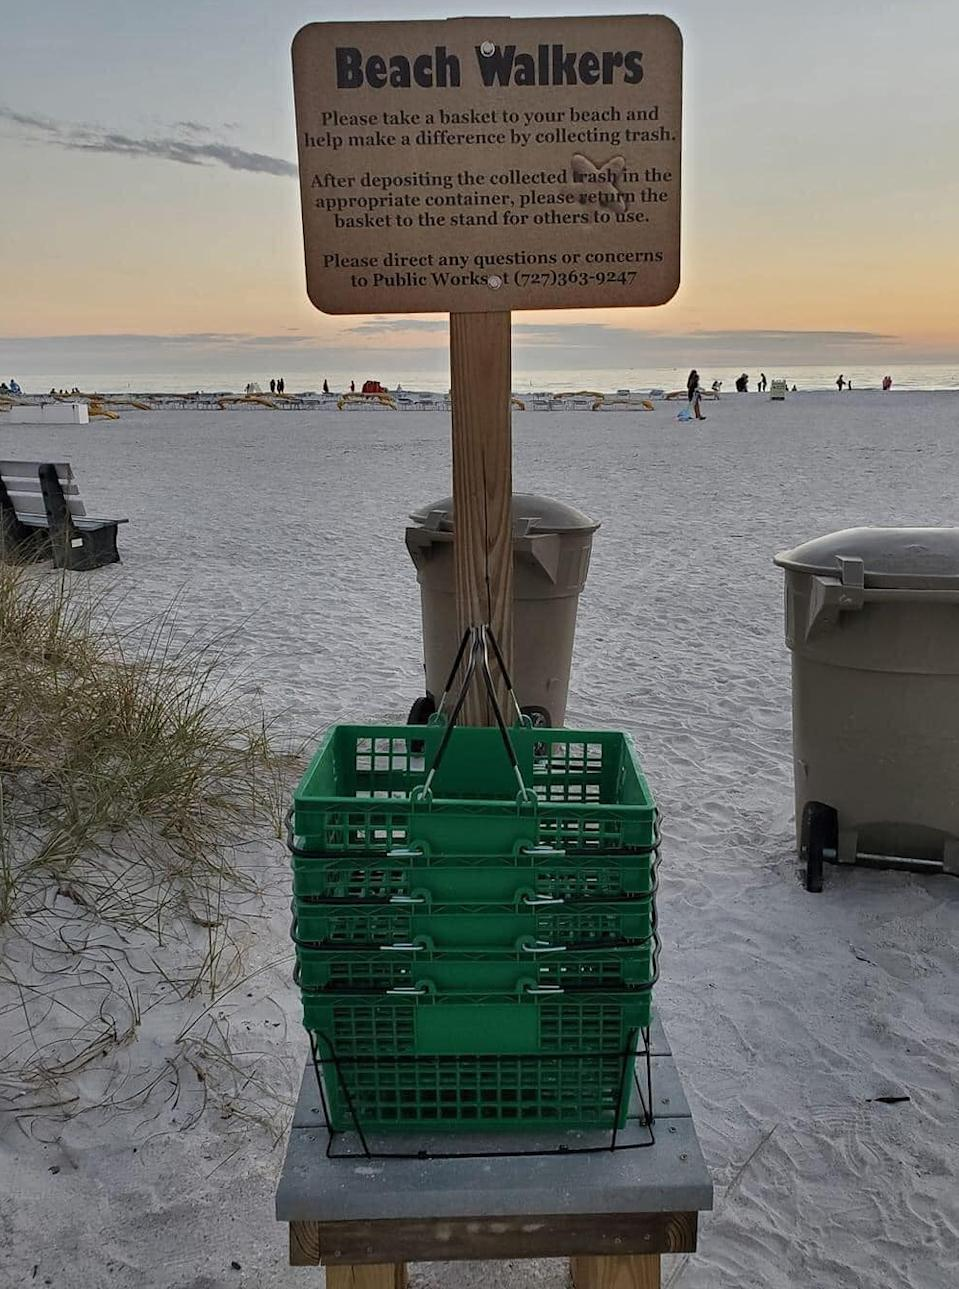 Supermarket baskets placed at the beach to ask volunteers to help clean up the area